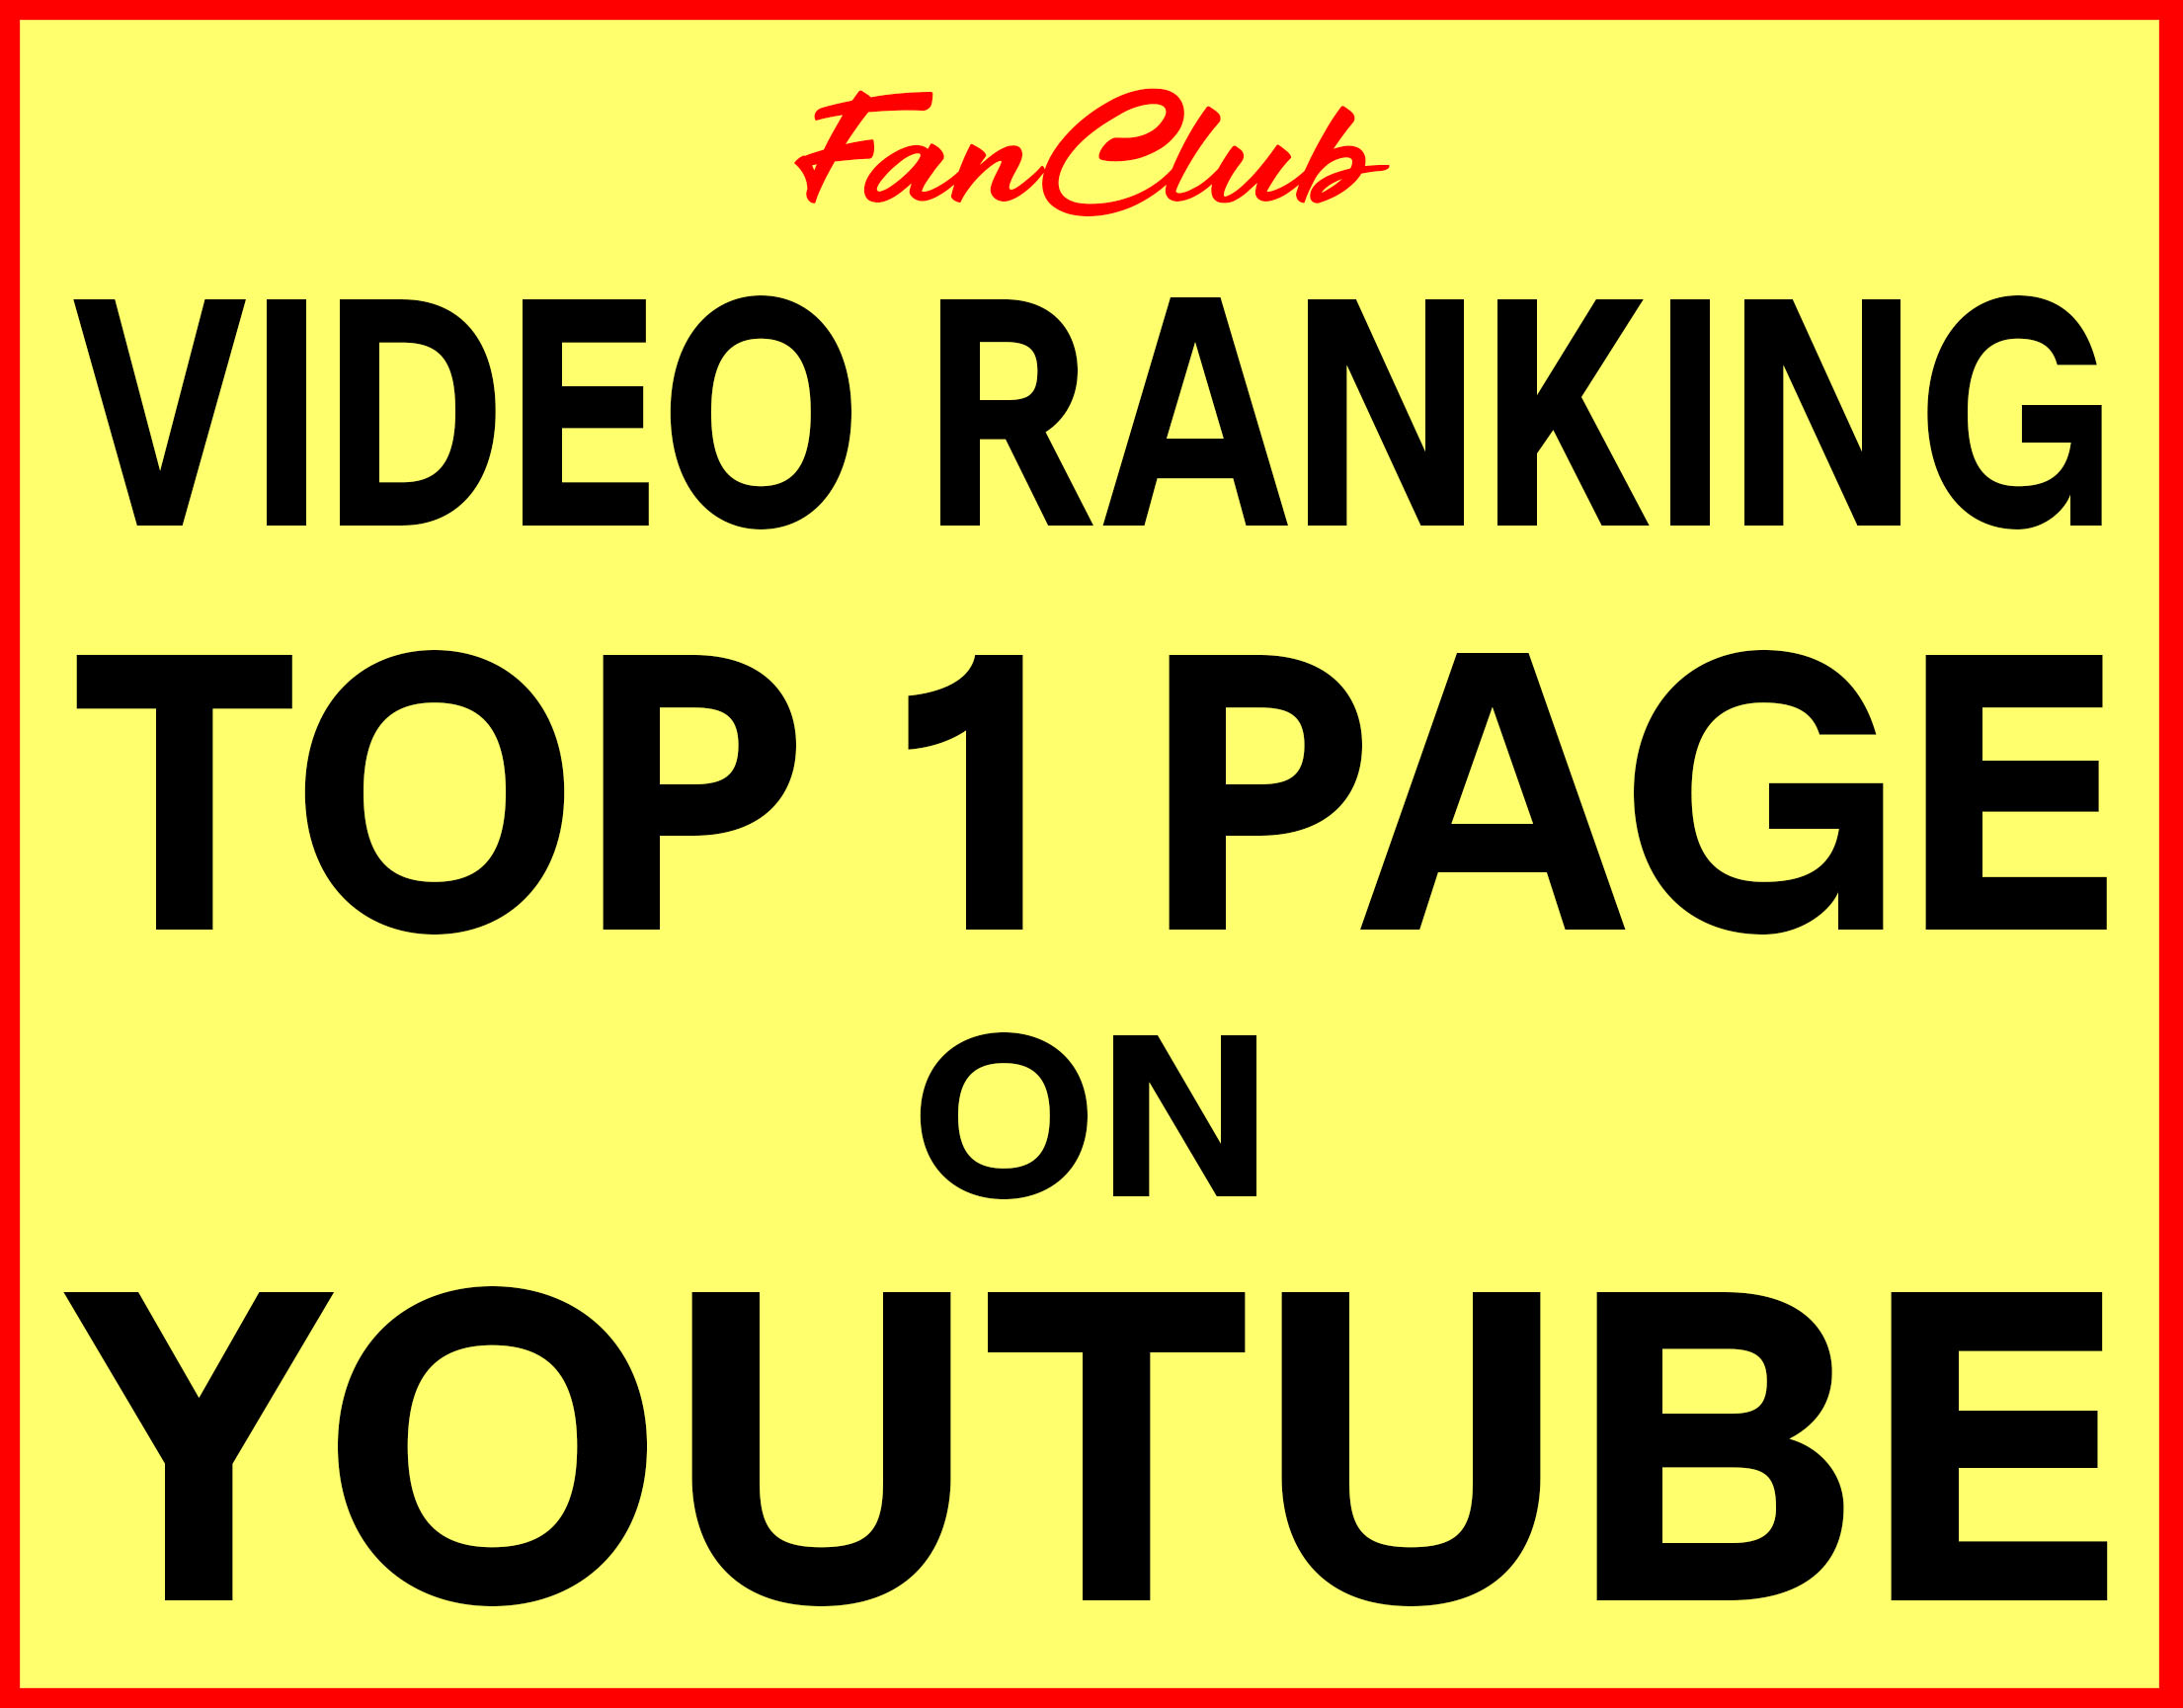 Video Ranking Top 1 Page On YouTube - 99% Success Rate